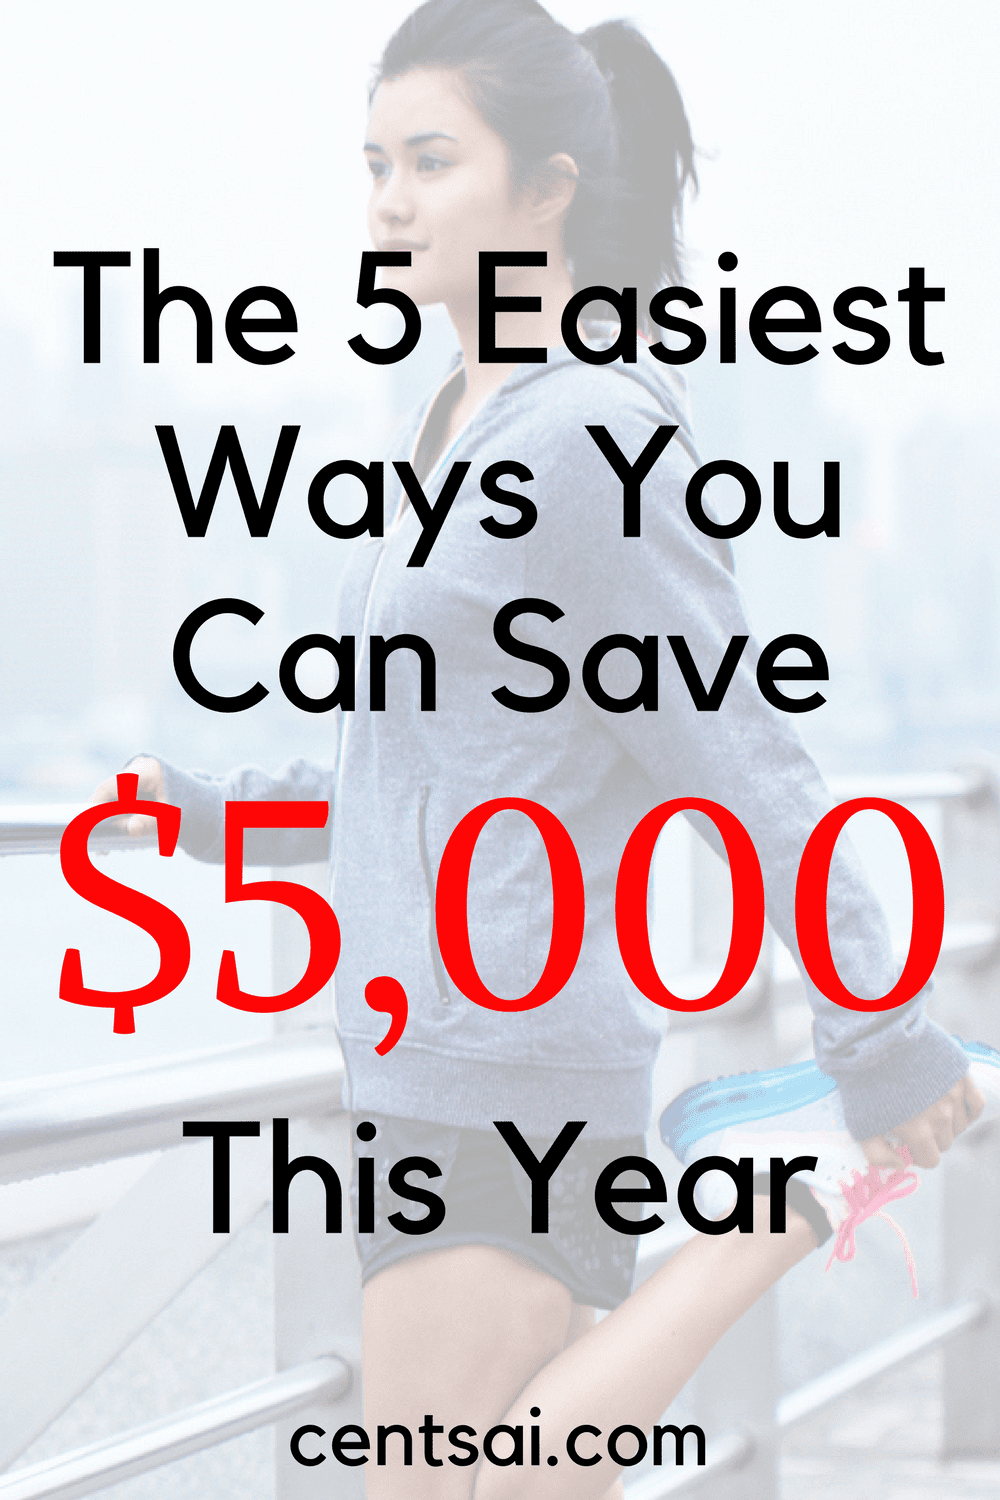 The 5 Easiest Ways You Can Save $5,000 This Year. These are easy steps to save money this year!